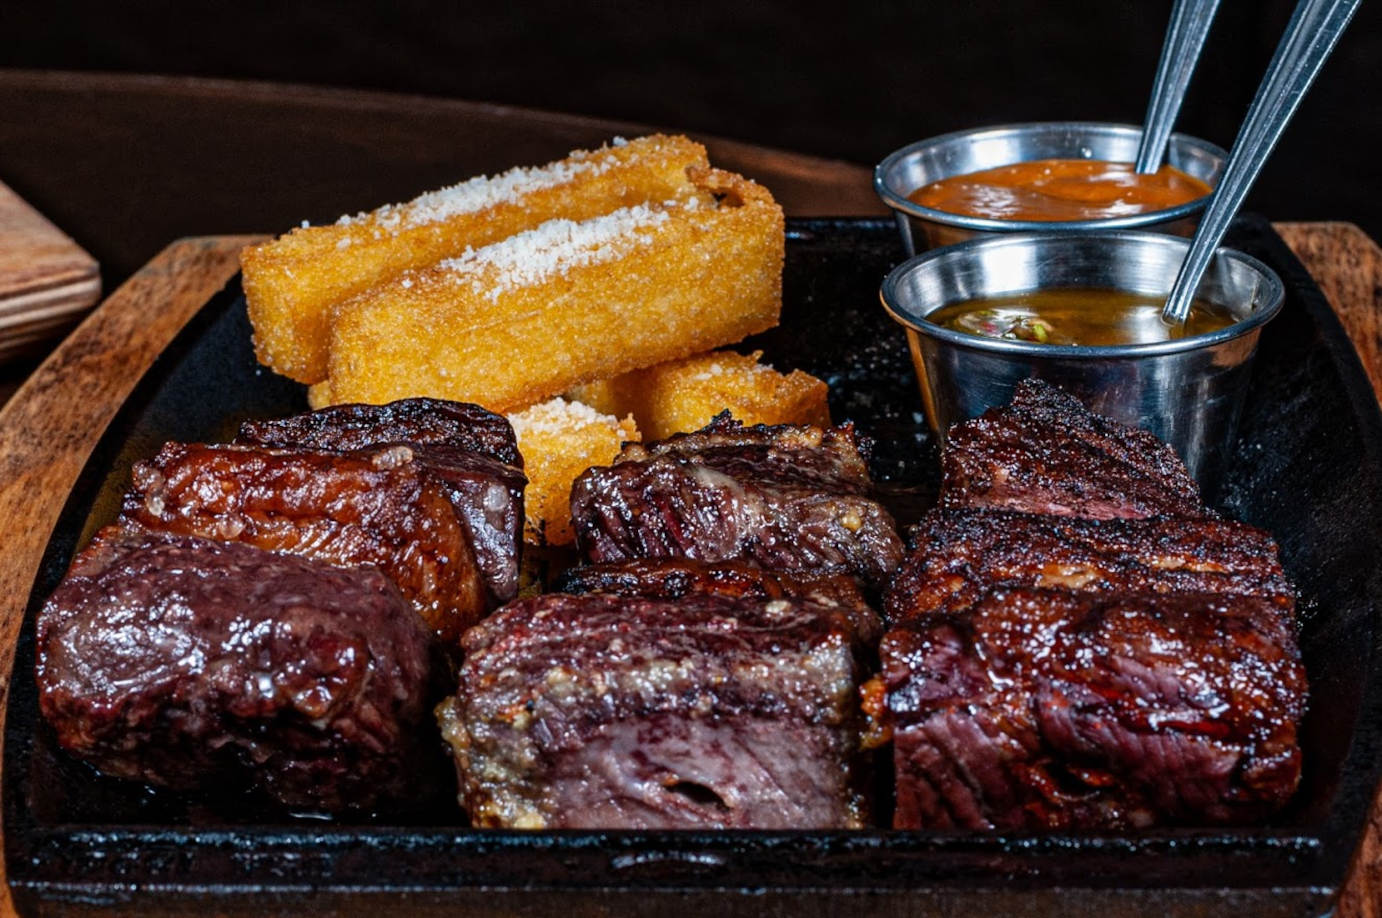 Grilled meat and two dips